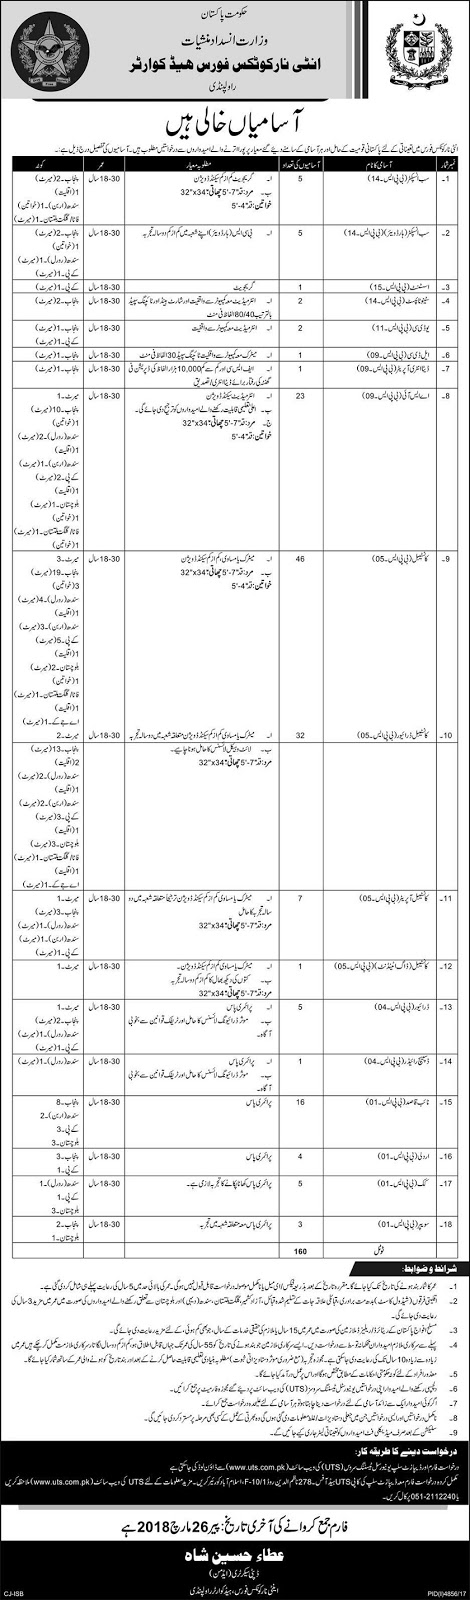 Jobs in KPK, Jobs in Punjab, Jobs in Lahore, Jobs in Karachi, Jobs in SIndh, Jobs in Quetta, Jobs in Balochistan